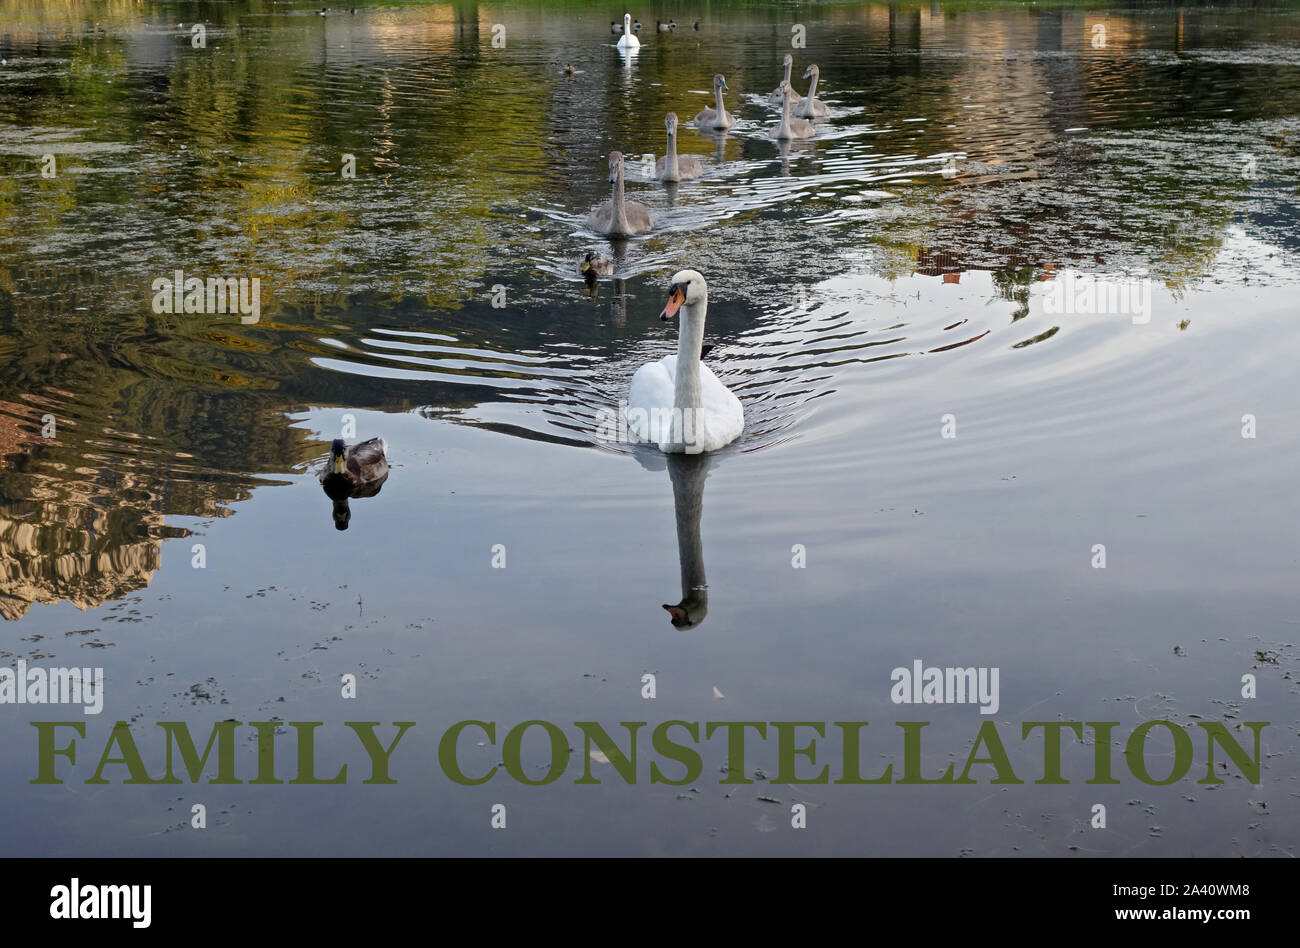 FAMILY CONSTELLATION Stock Photo